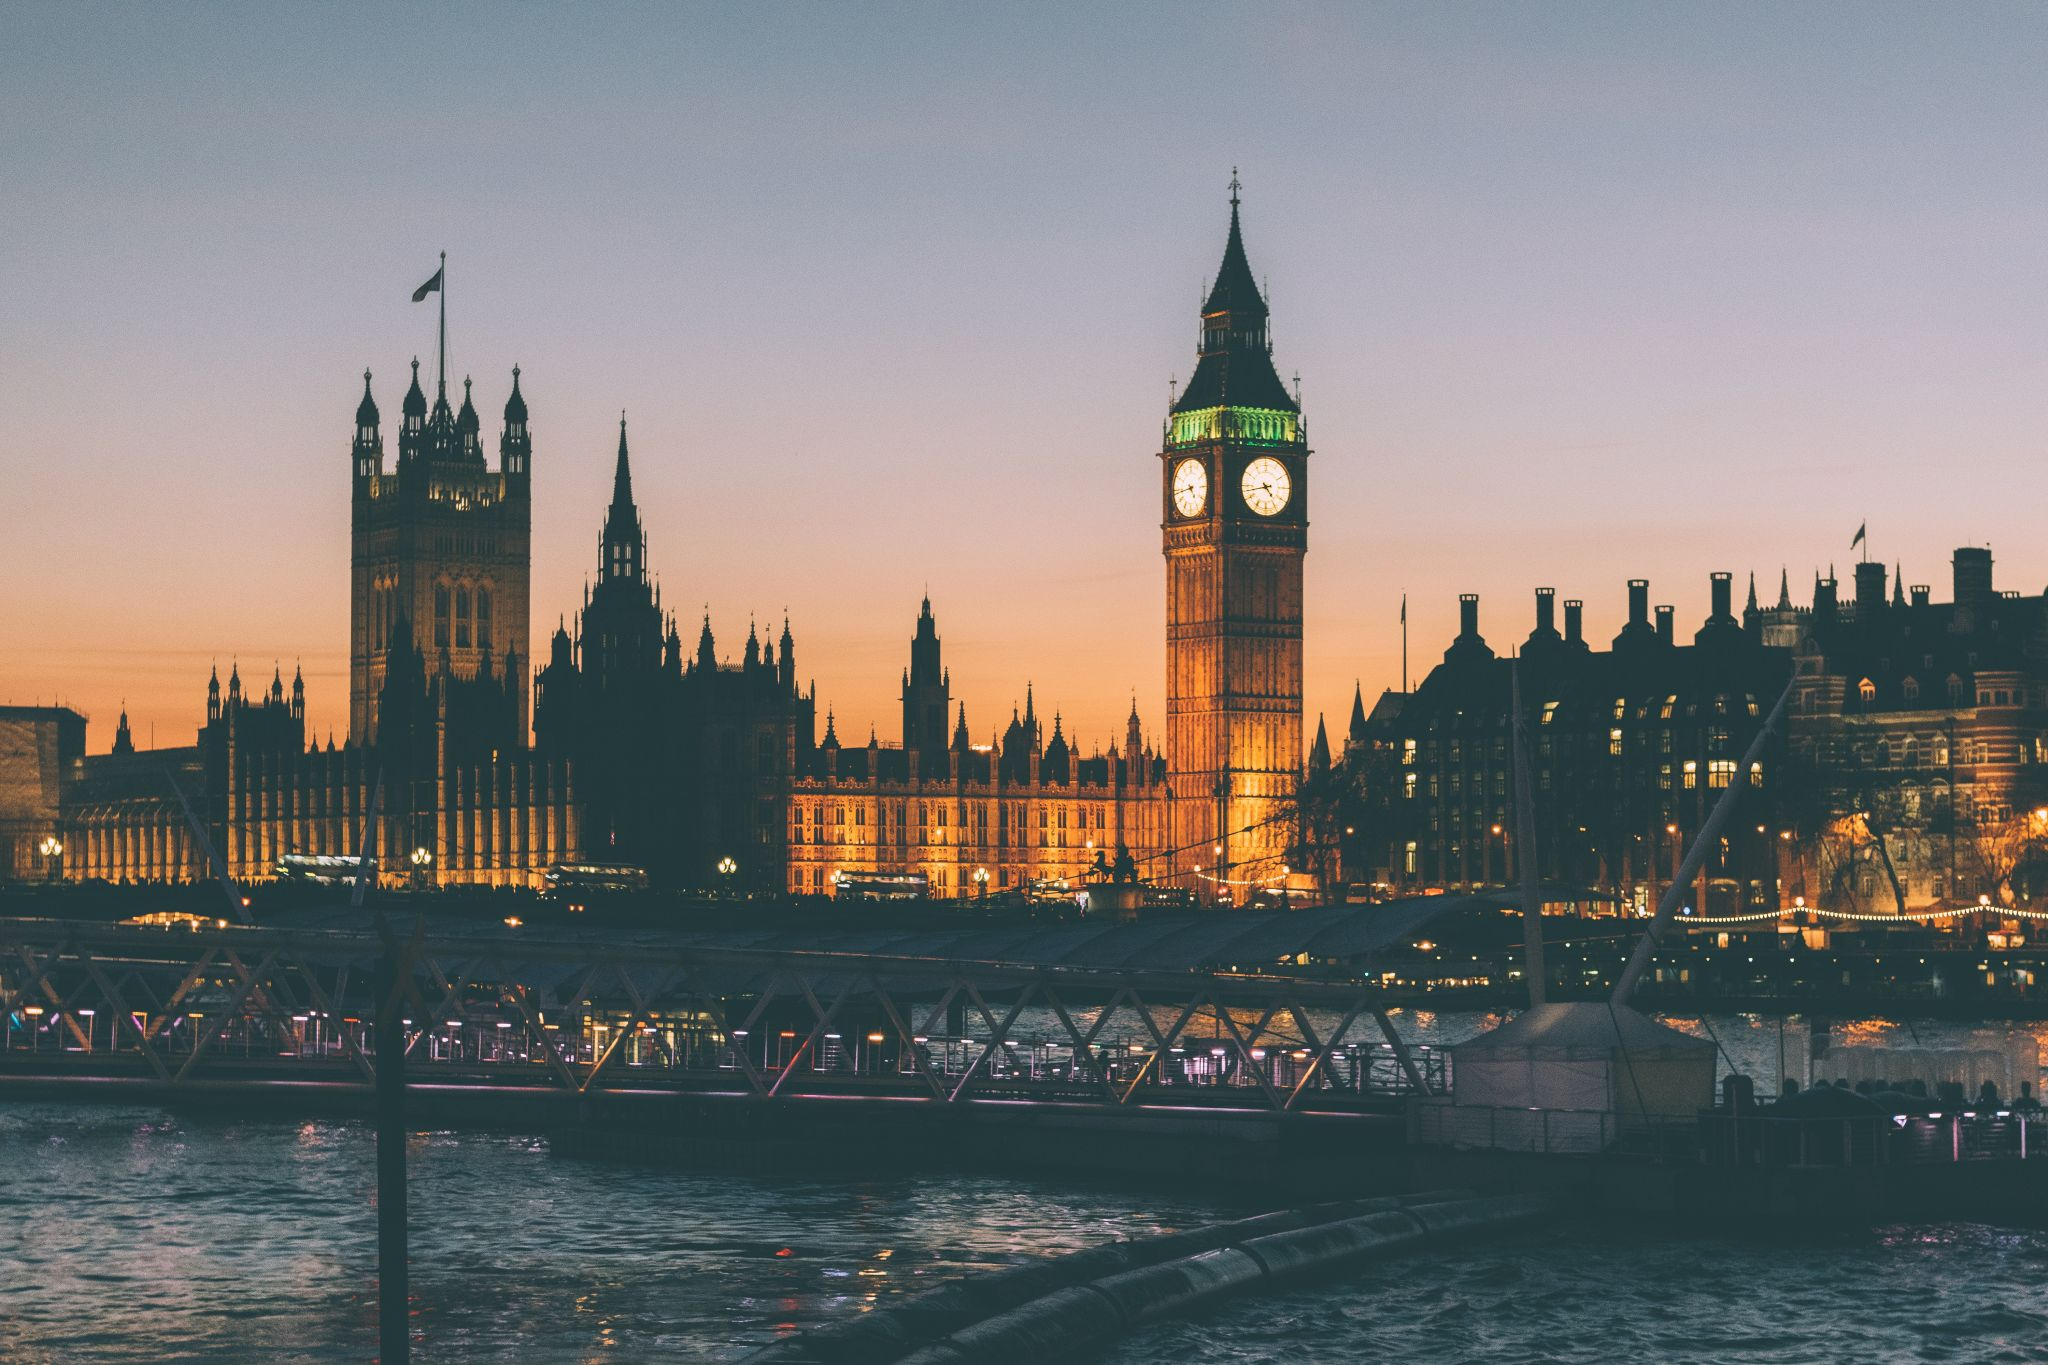 Fun things to do in london gemma louise this is a huge city so get yourself an oyster card and be prepared to go find some really fun things to do here it is just waiting for you to explore it solutioingenieria Images